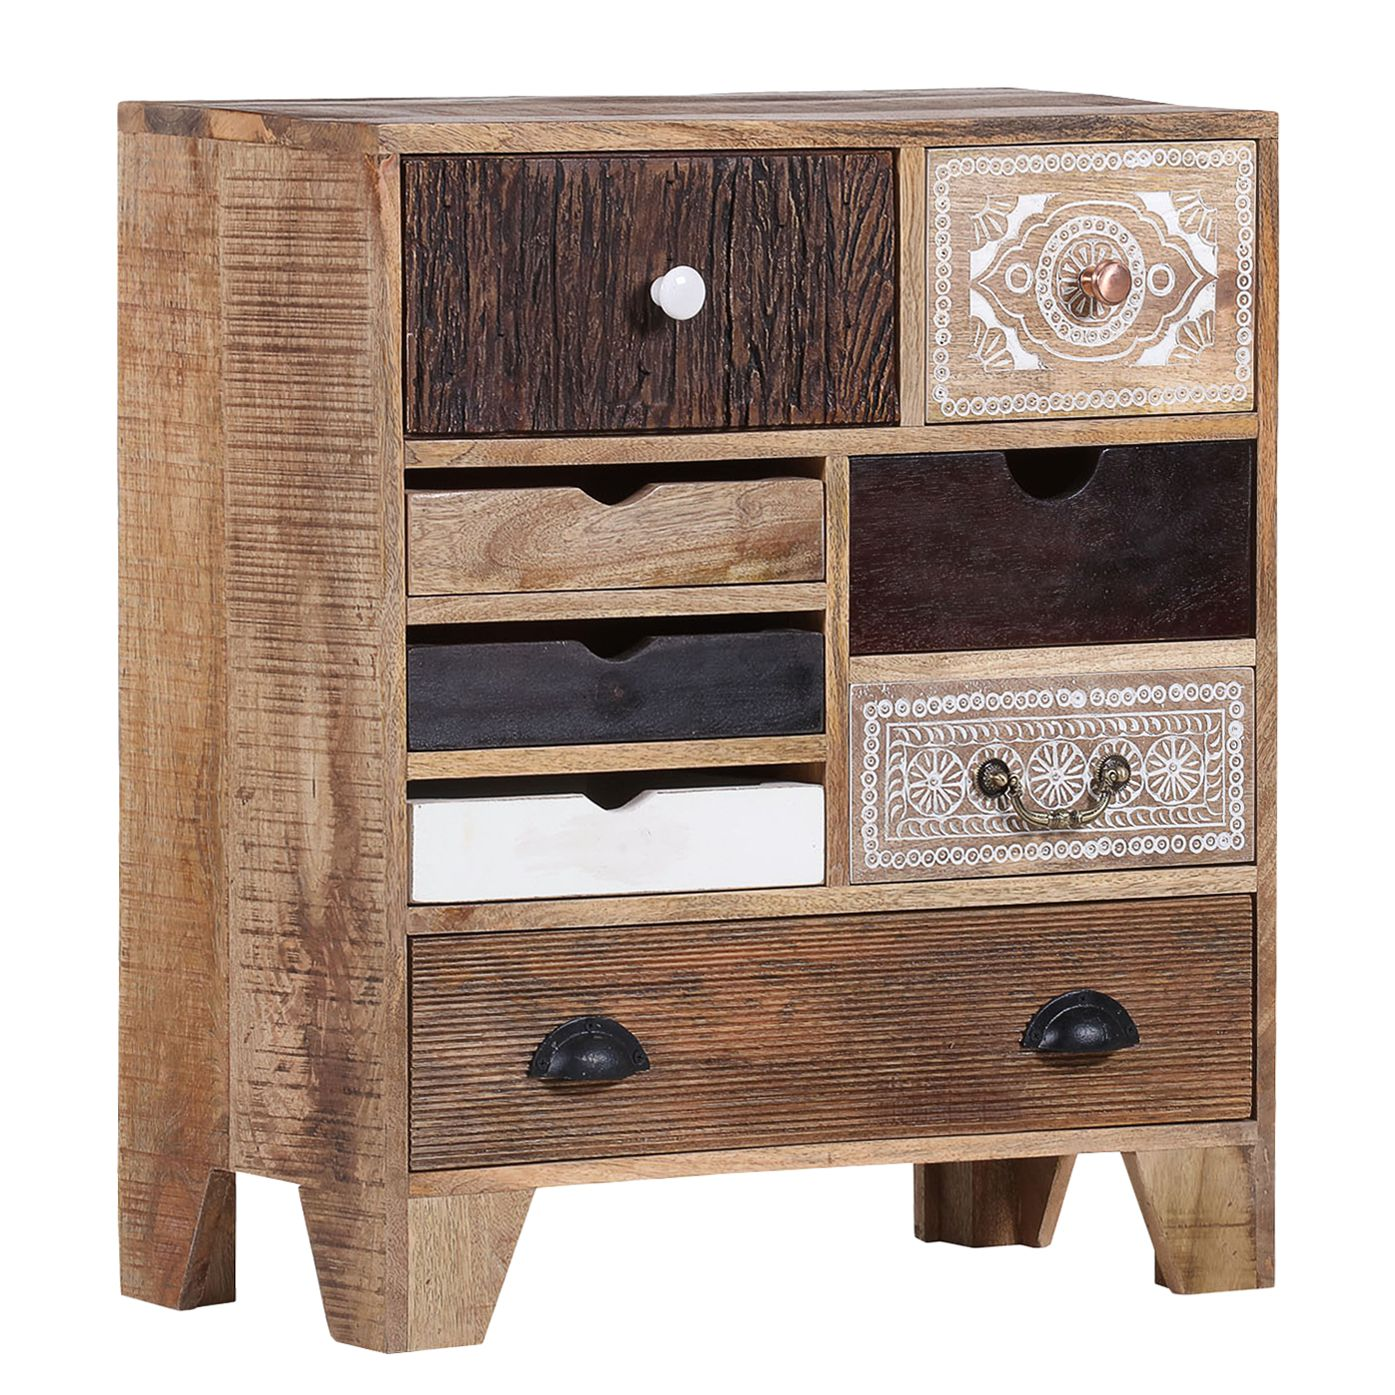 Commode Curenna II - Manguier partiellement massif - Manguier / Marron, Ars Natura